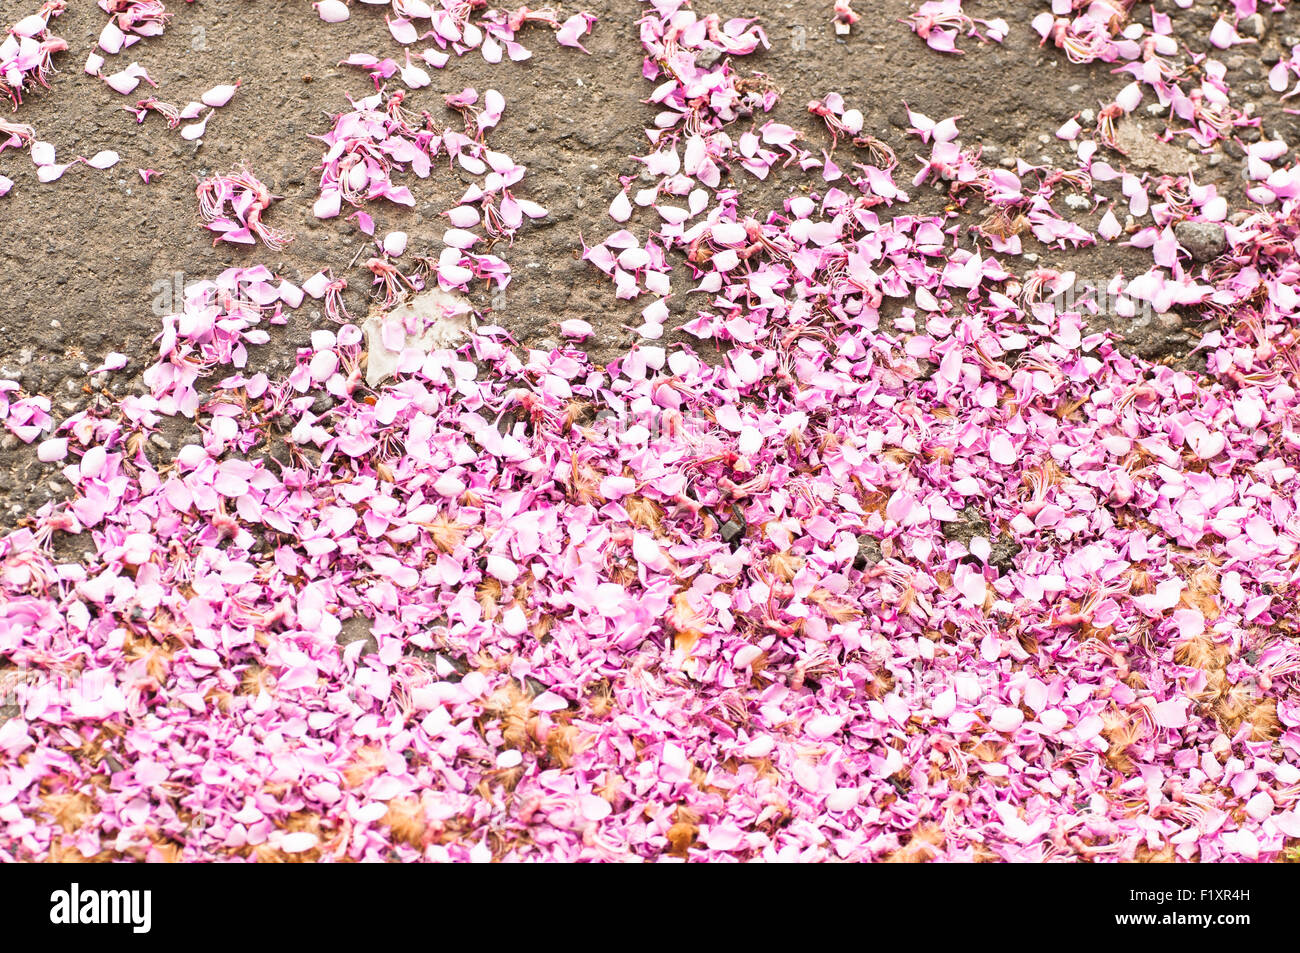 petals wisteria on the road - Stock Image